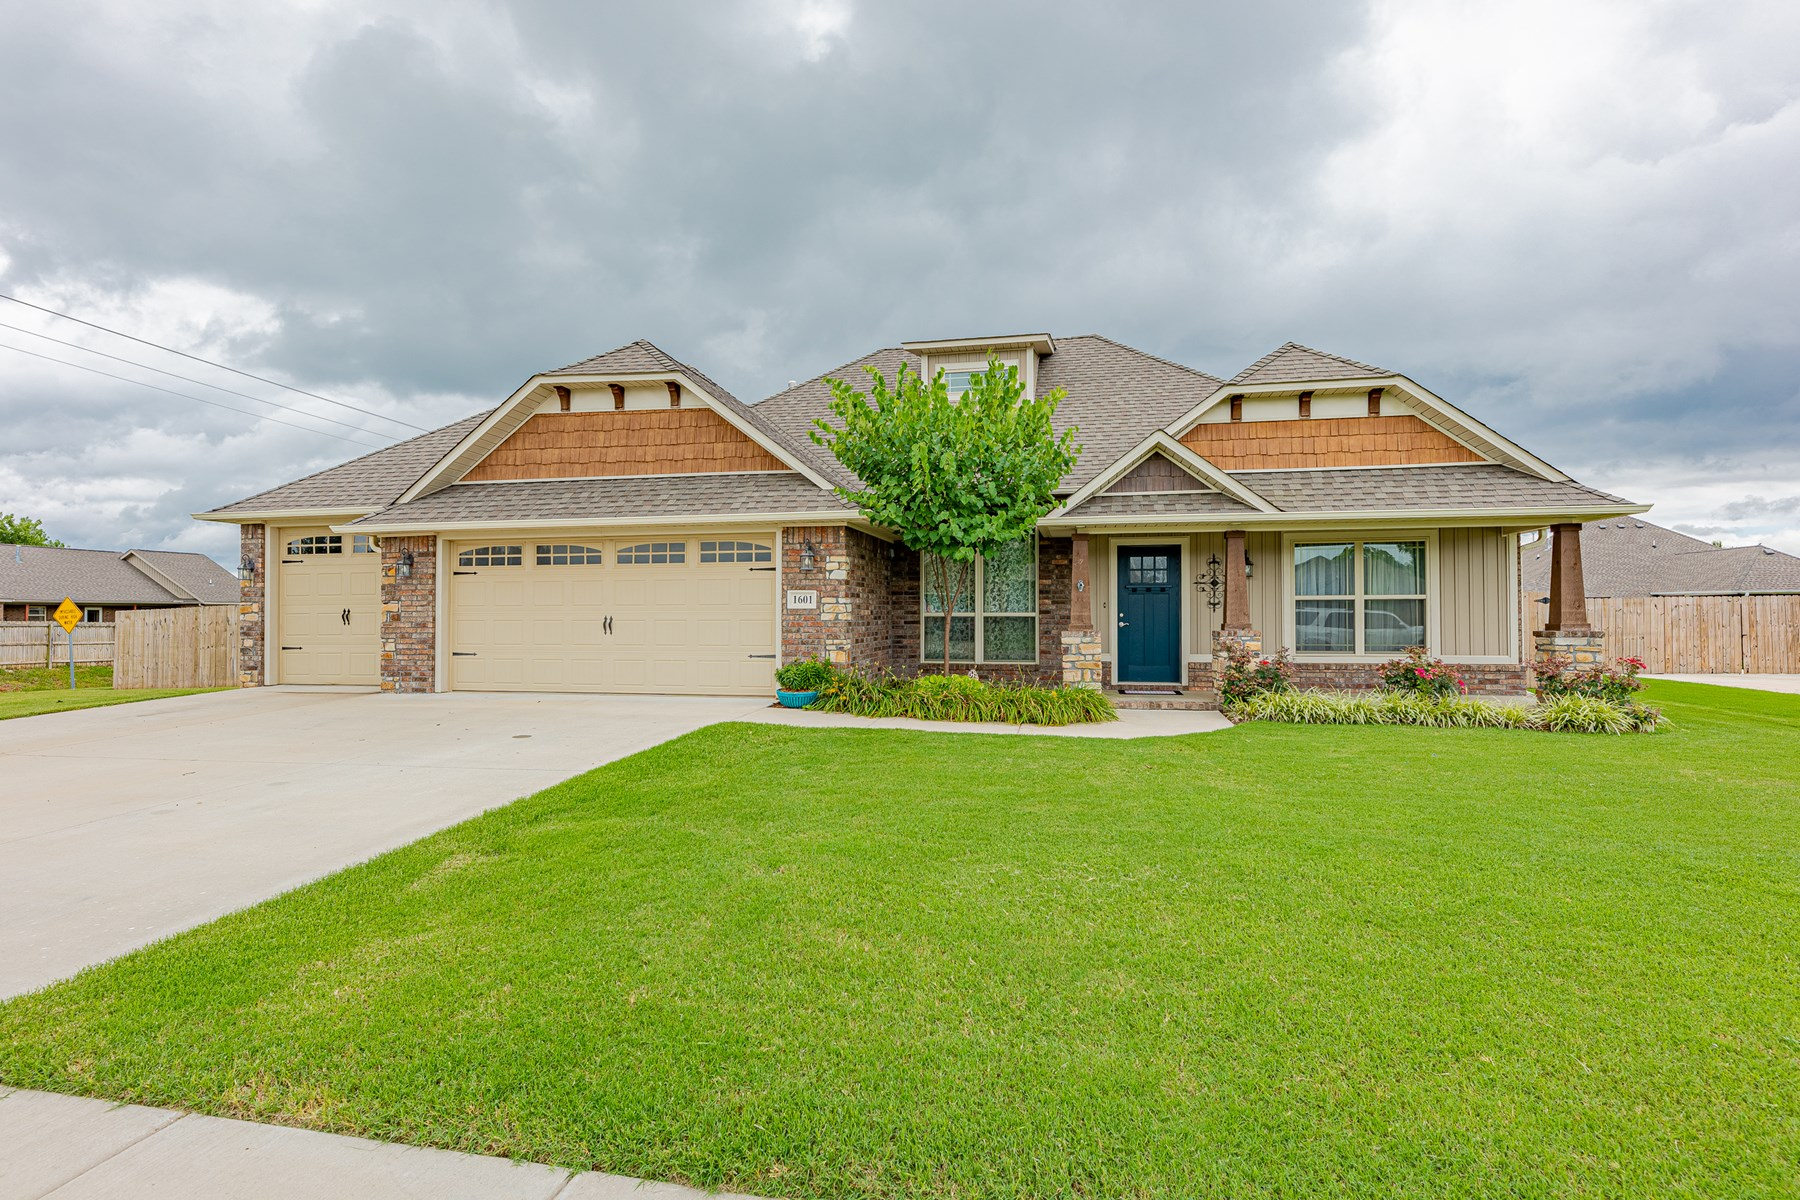 Craftsman style 4 bedroom home for sale in Pea Ridge